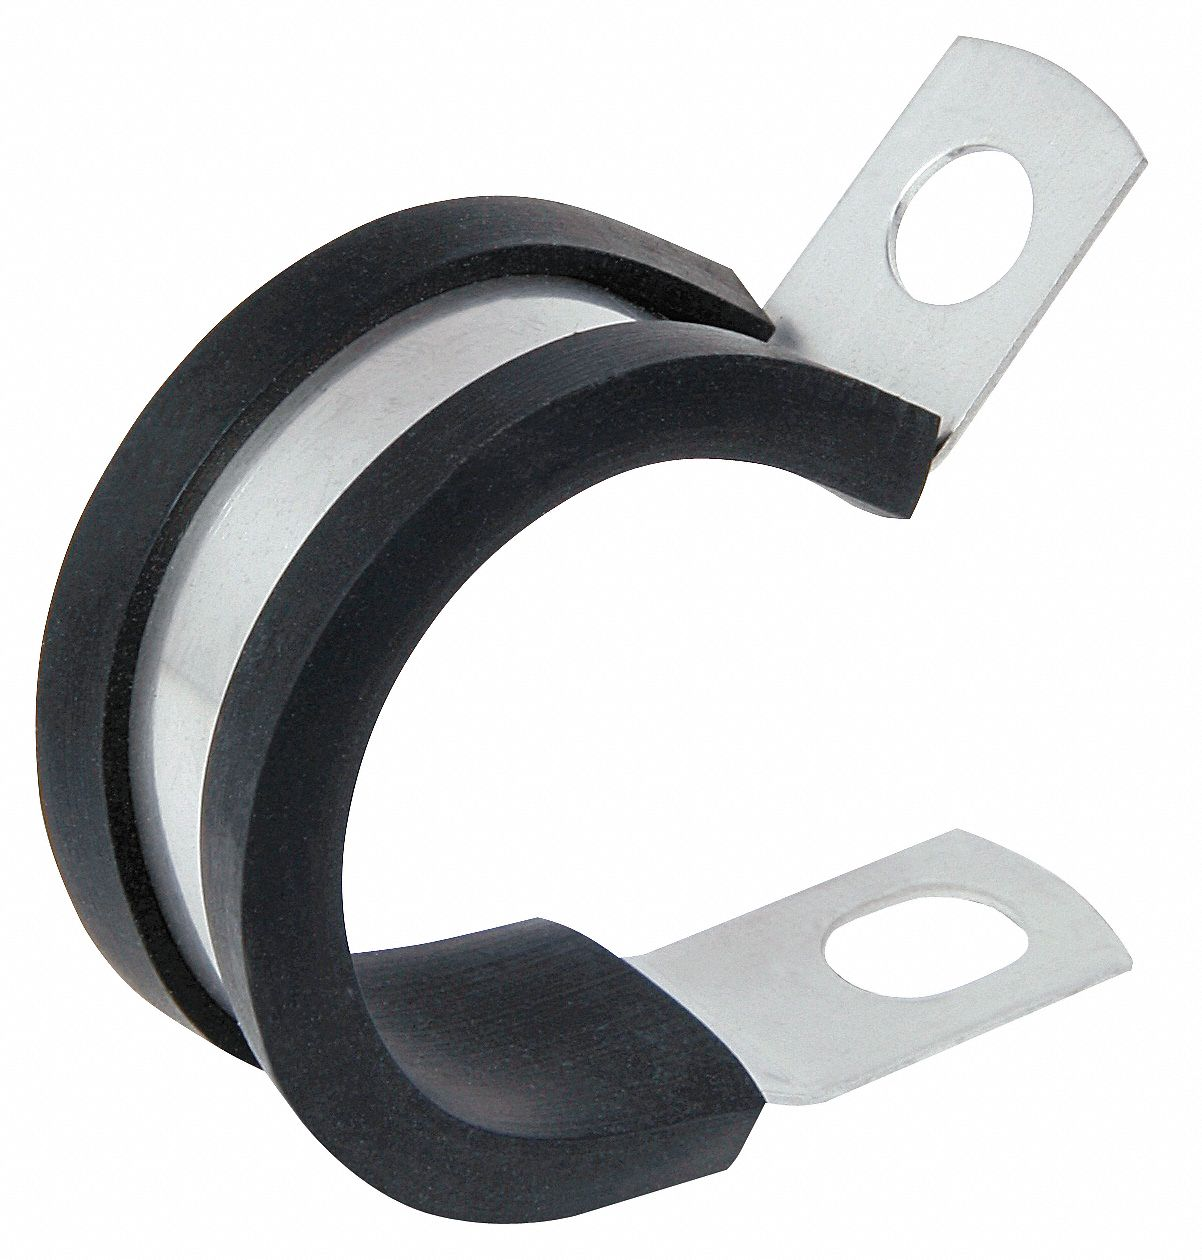 Clamp,  Cushioned Cable Clamp,  Steel,  1 3/4 in Cable Clamping Dia.,  0.048 in Clamp Thickness